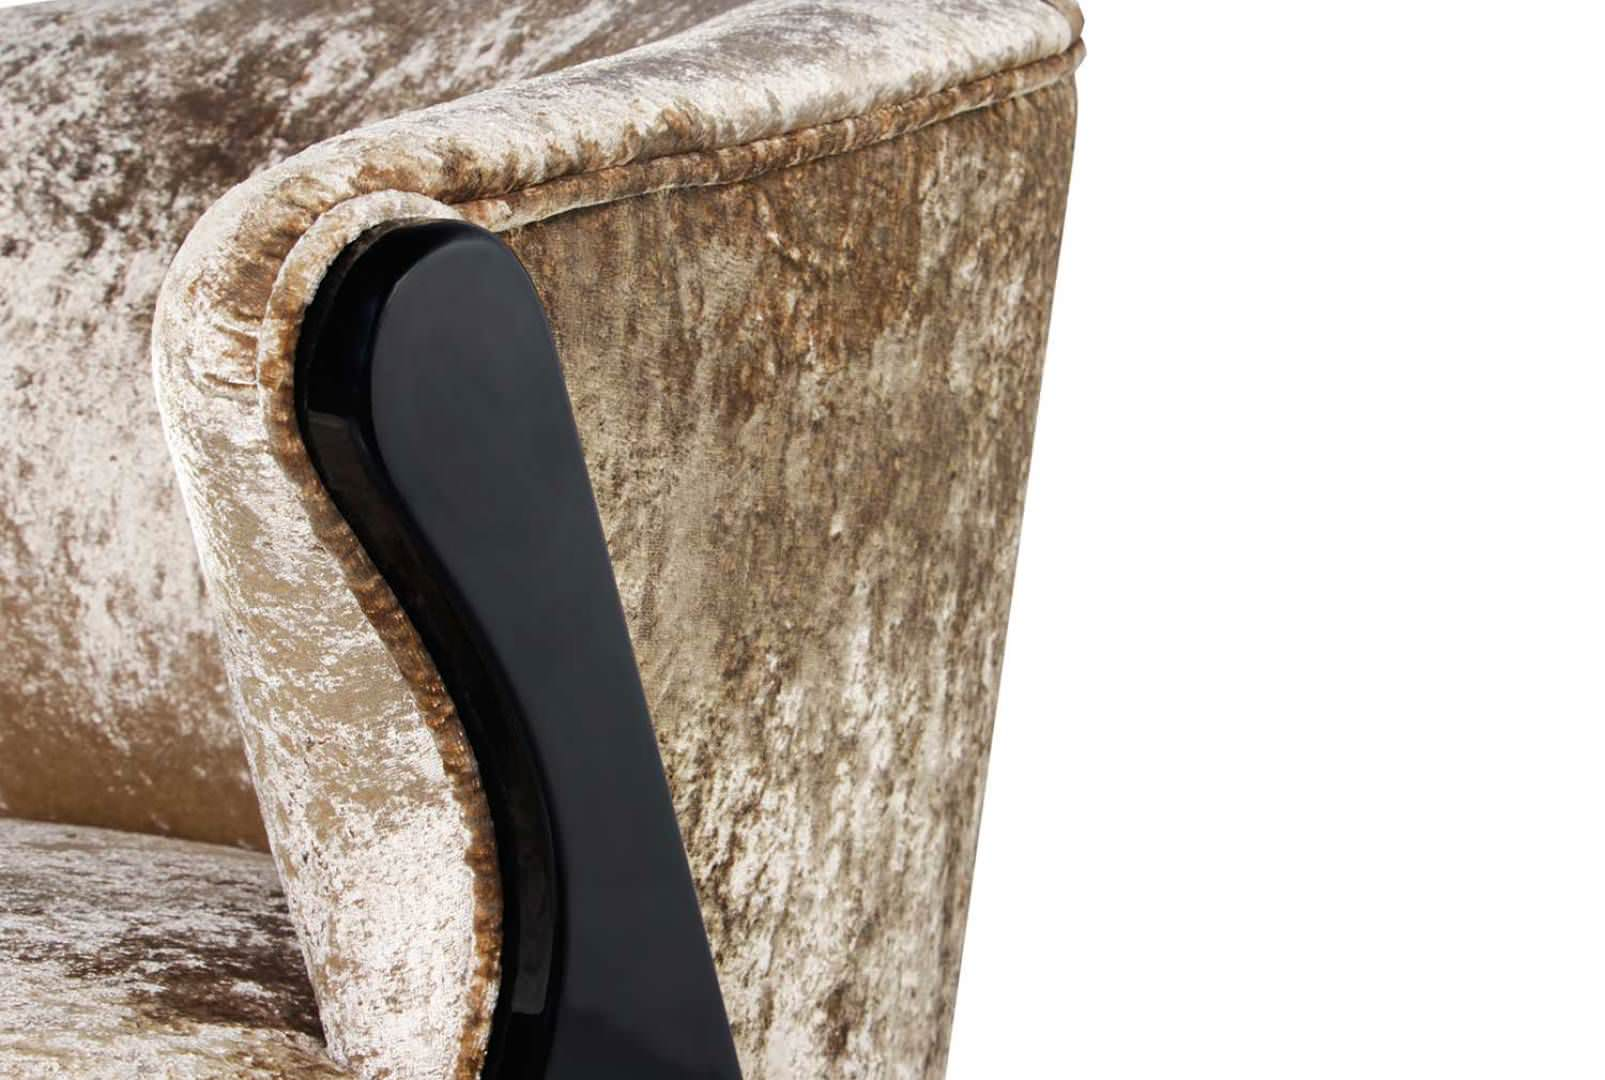 A plush upholstered seat is delicately framed by chicly lacquered mid-century modern legs stylishly capped in metal.